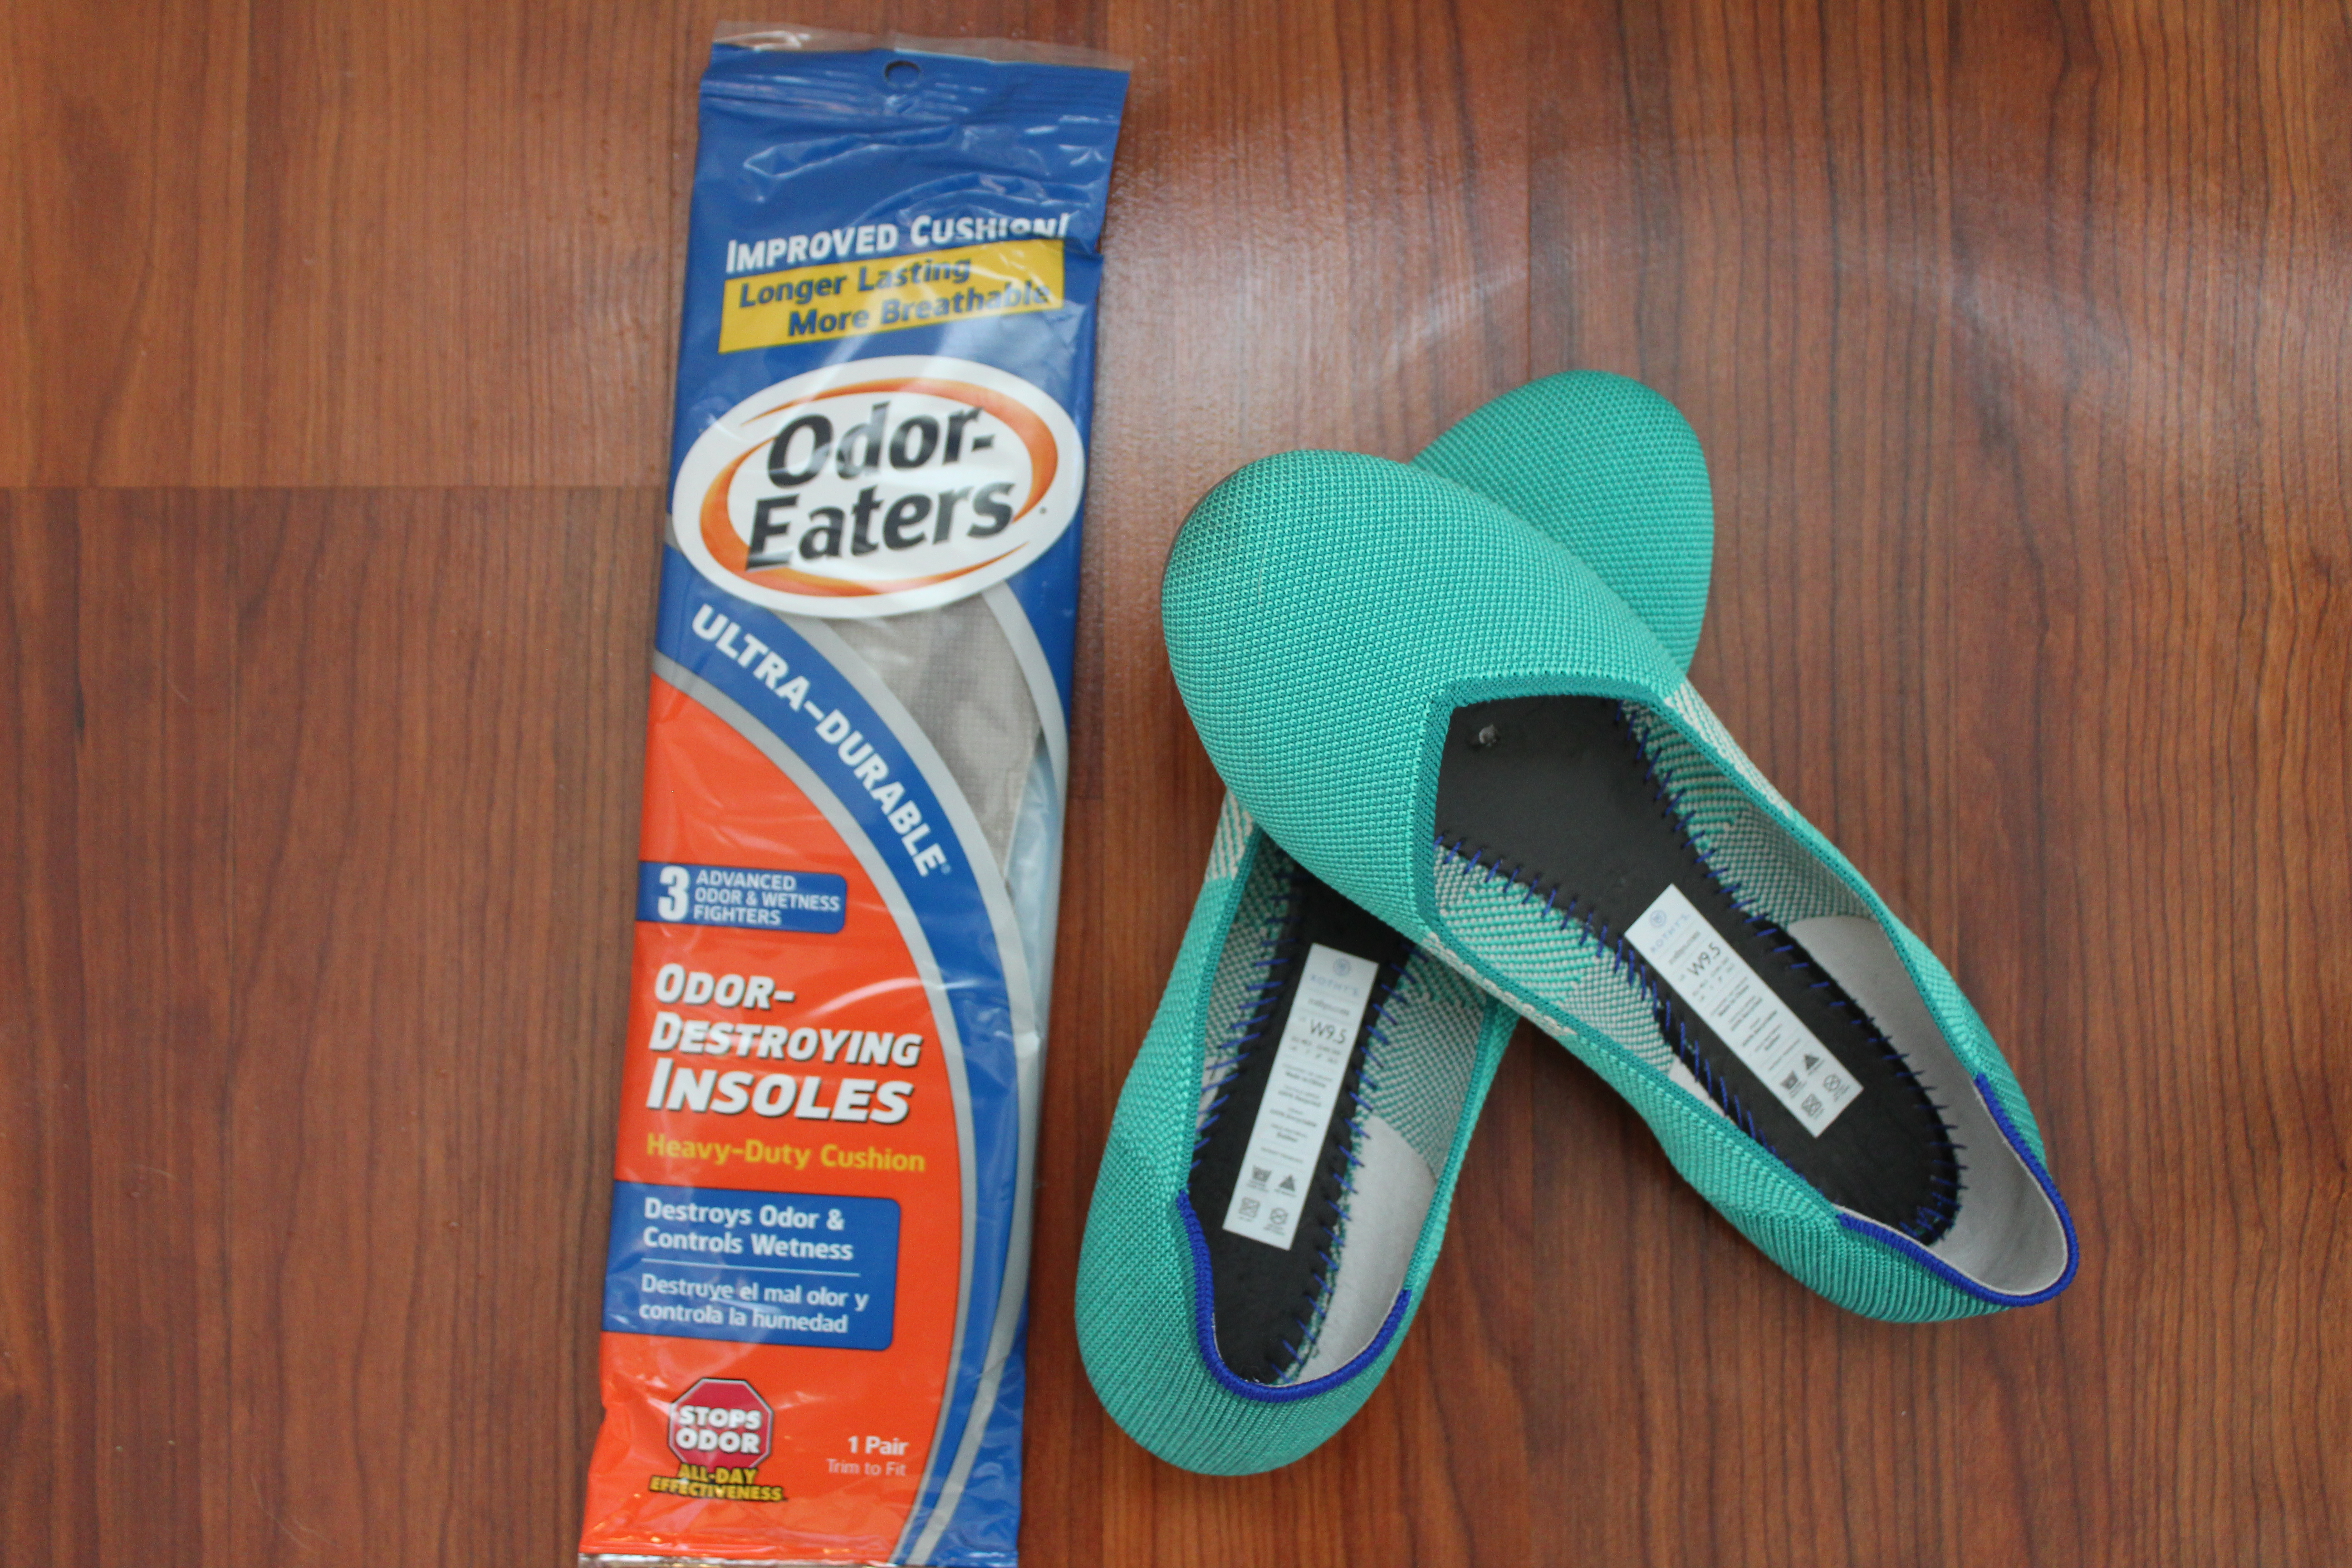 rothys with sole removed; ordor eaters insoles in package